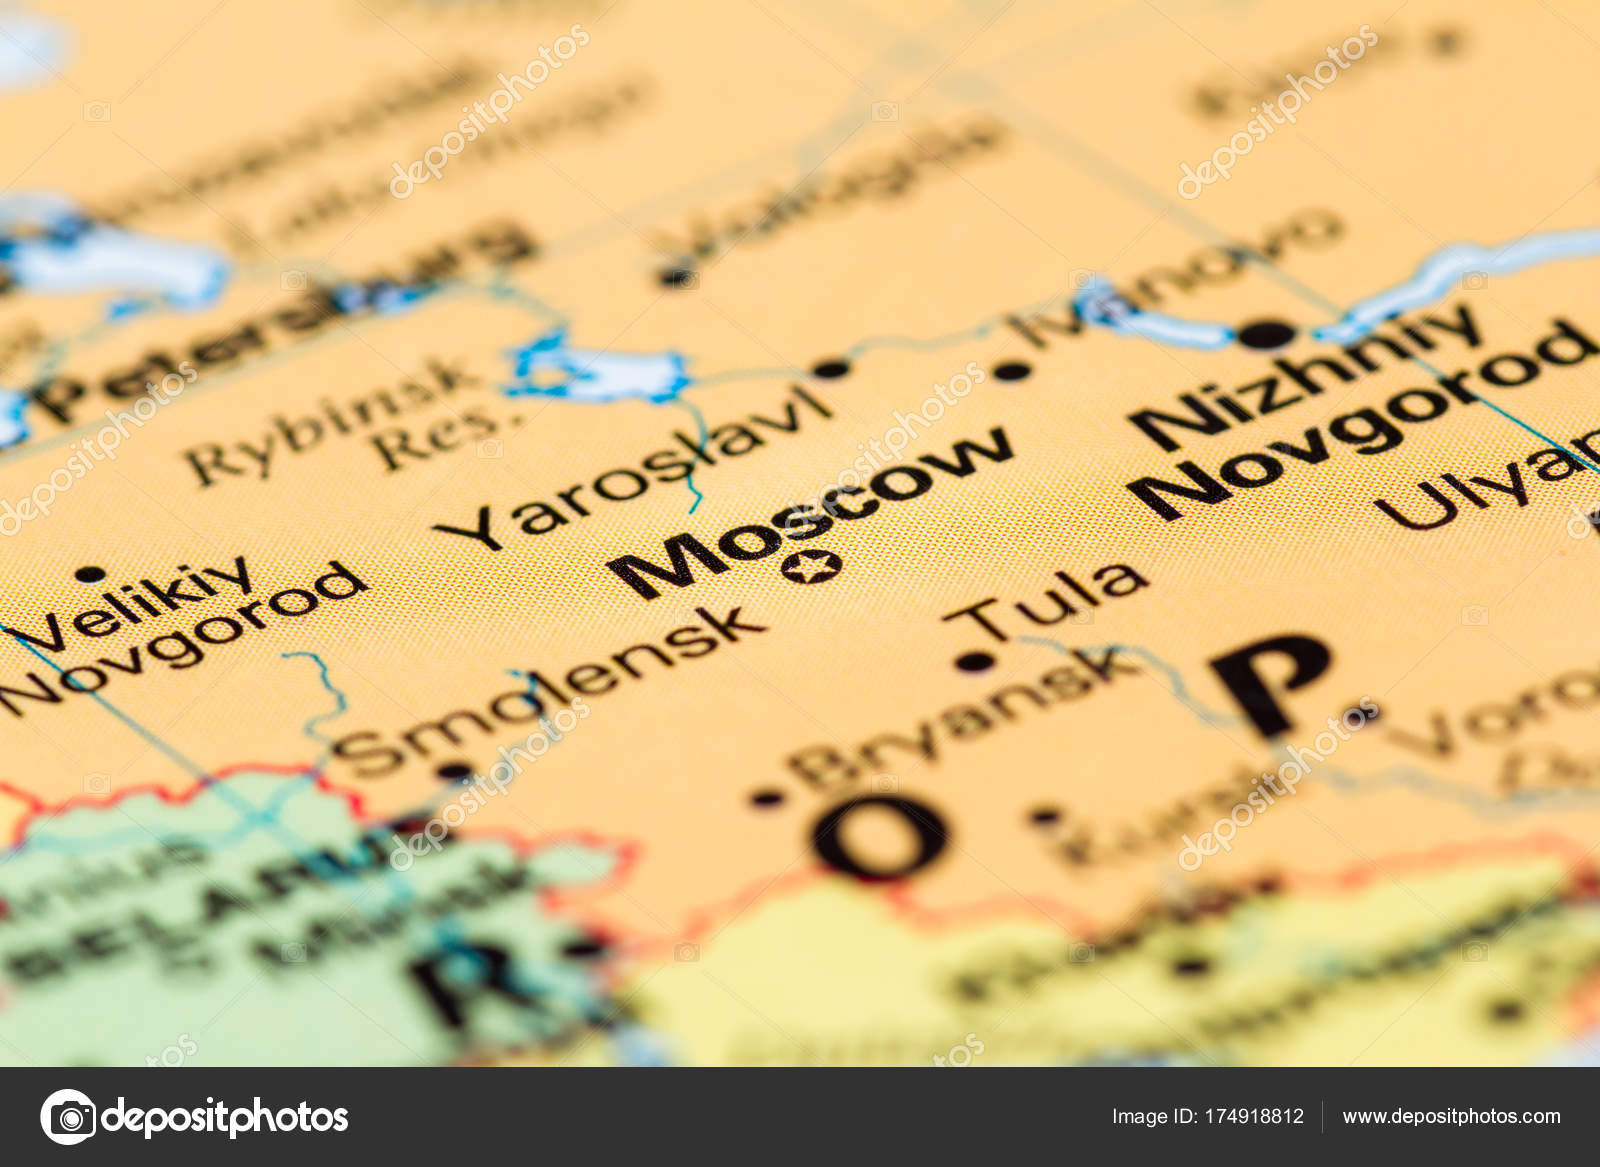 Moscow Russia On A Map Stock Photo C Wollertz 174918812